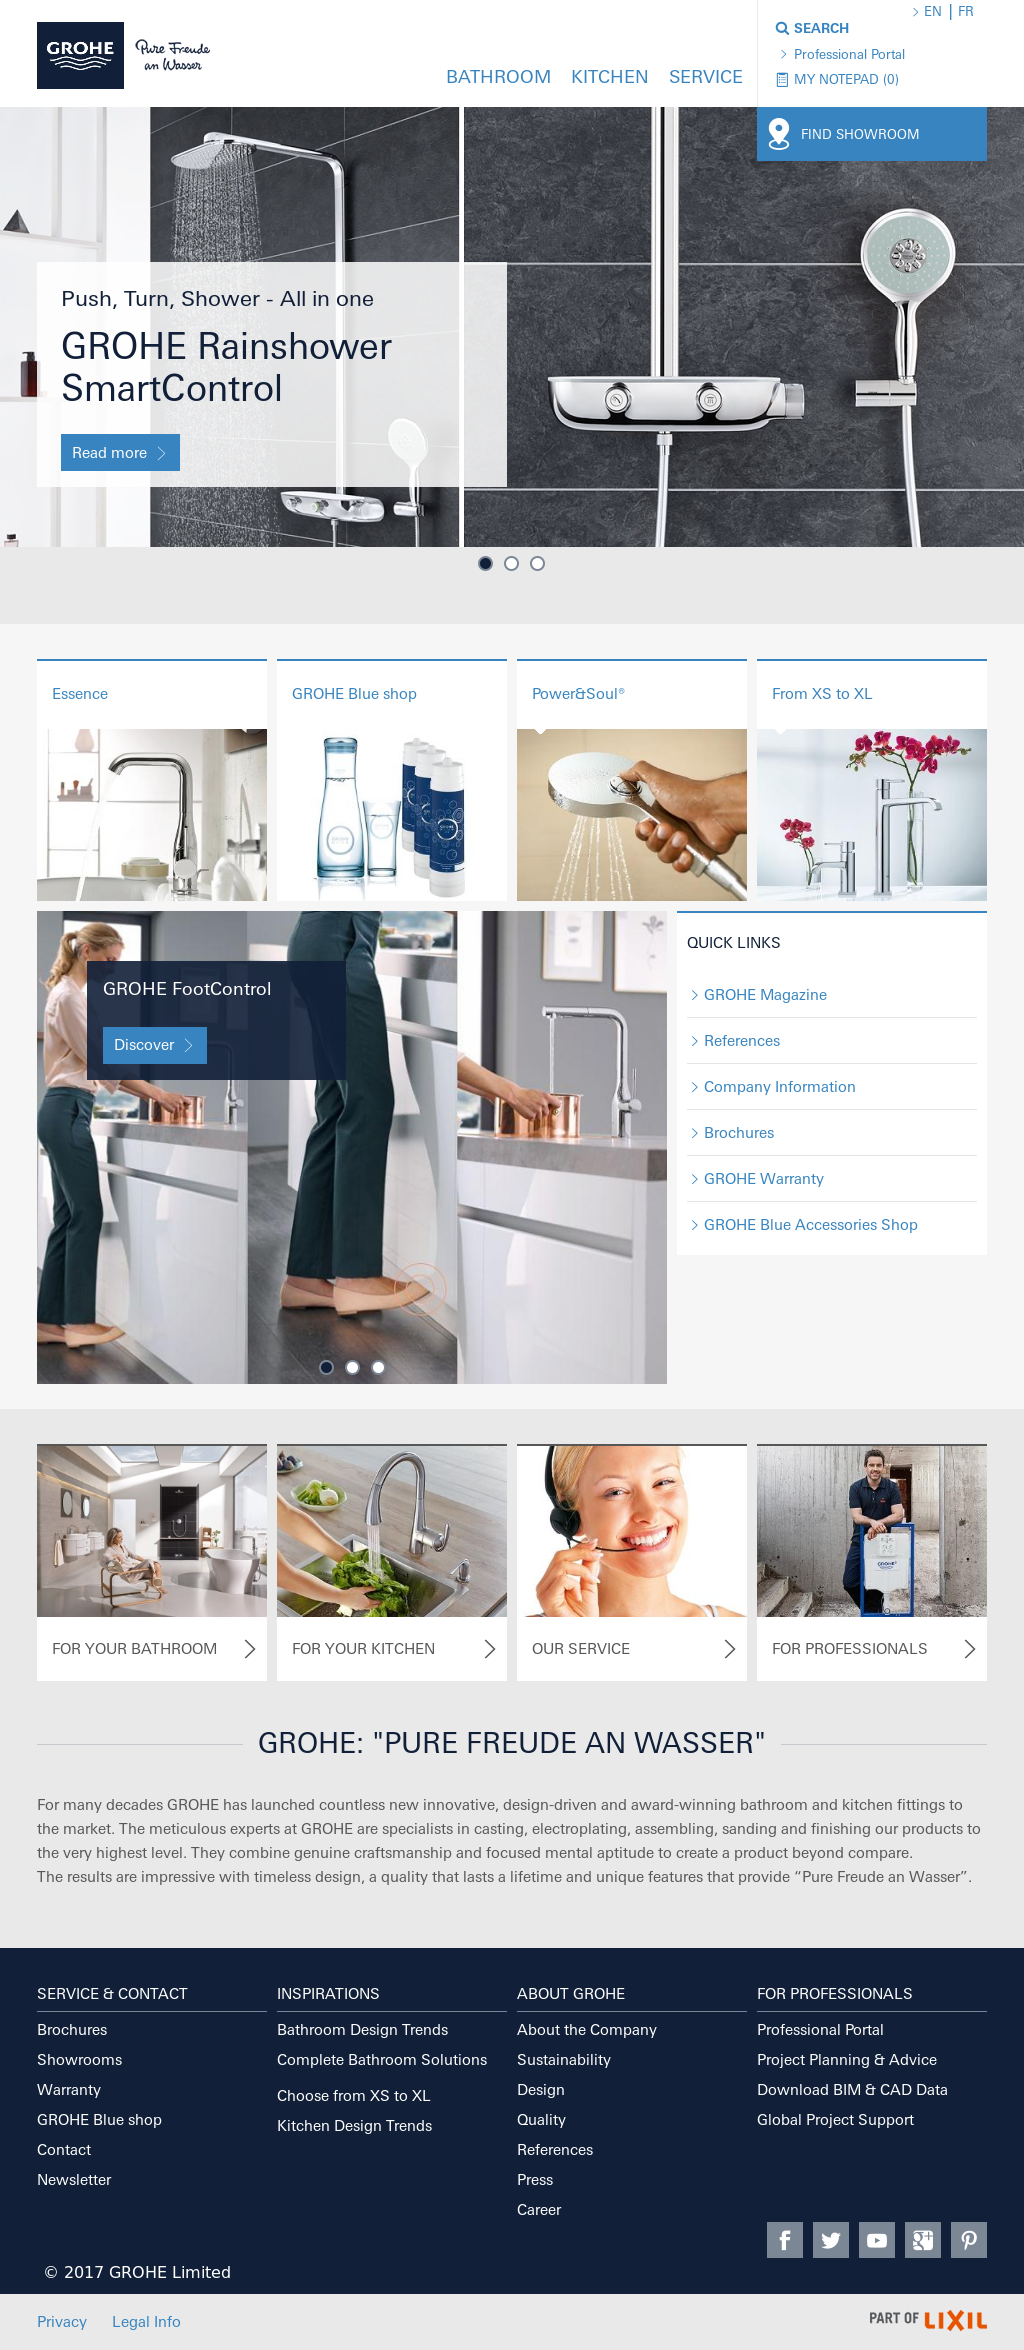 Grohe Canada Competitors, Revenue and Employees - Owler Company Profile